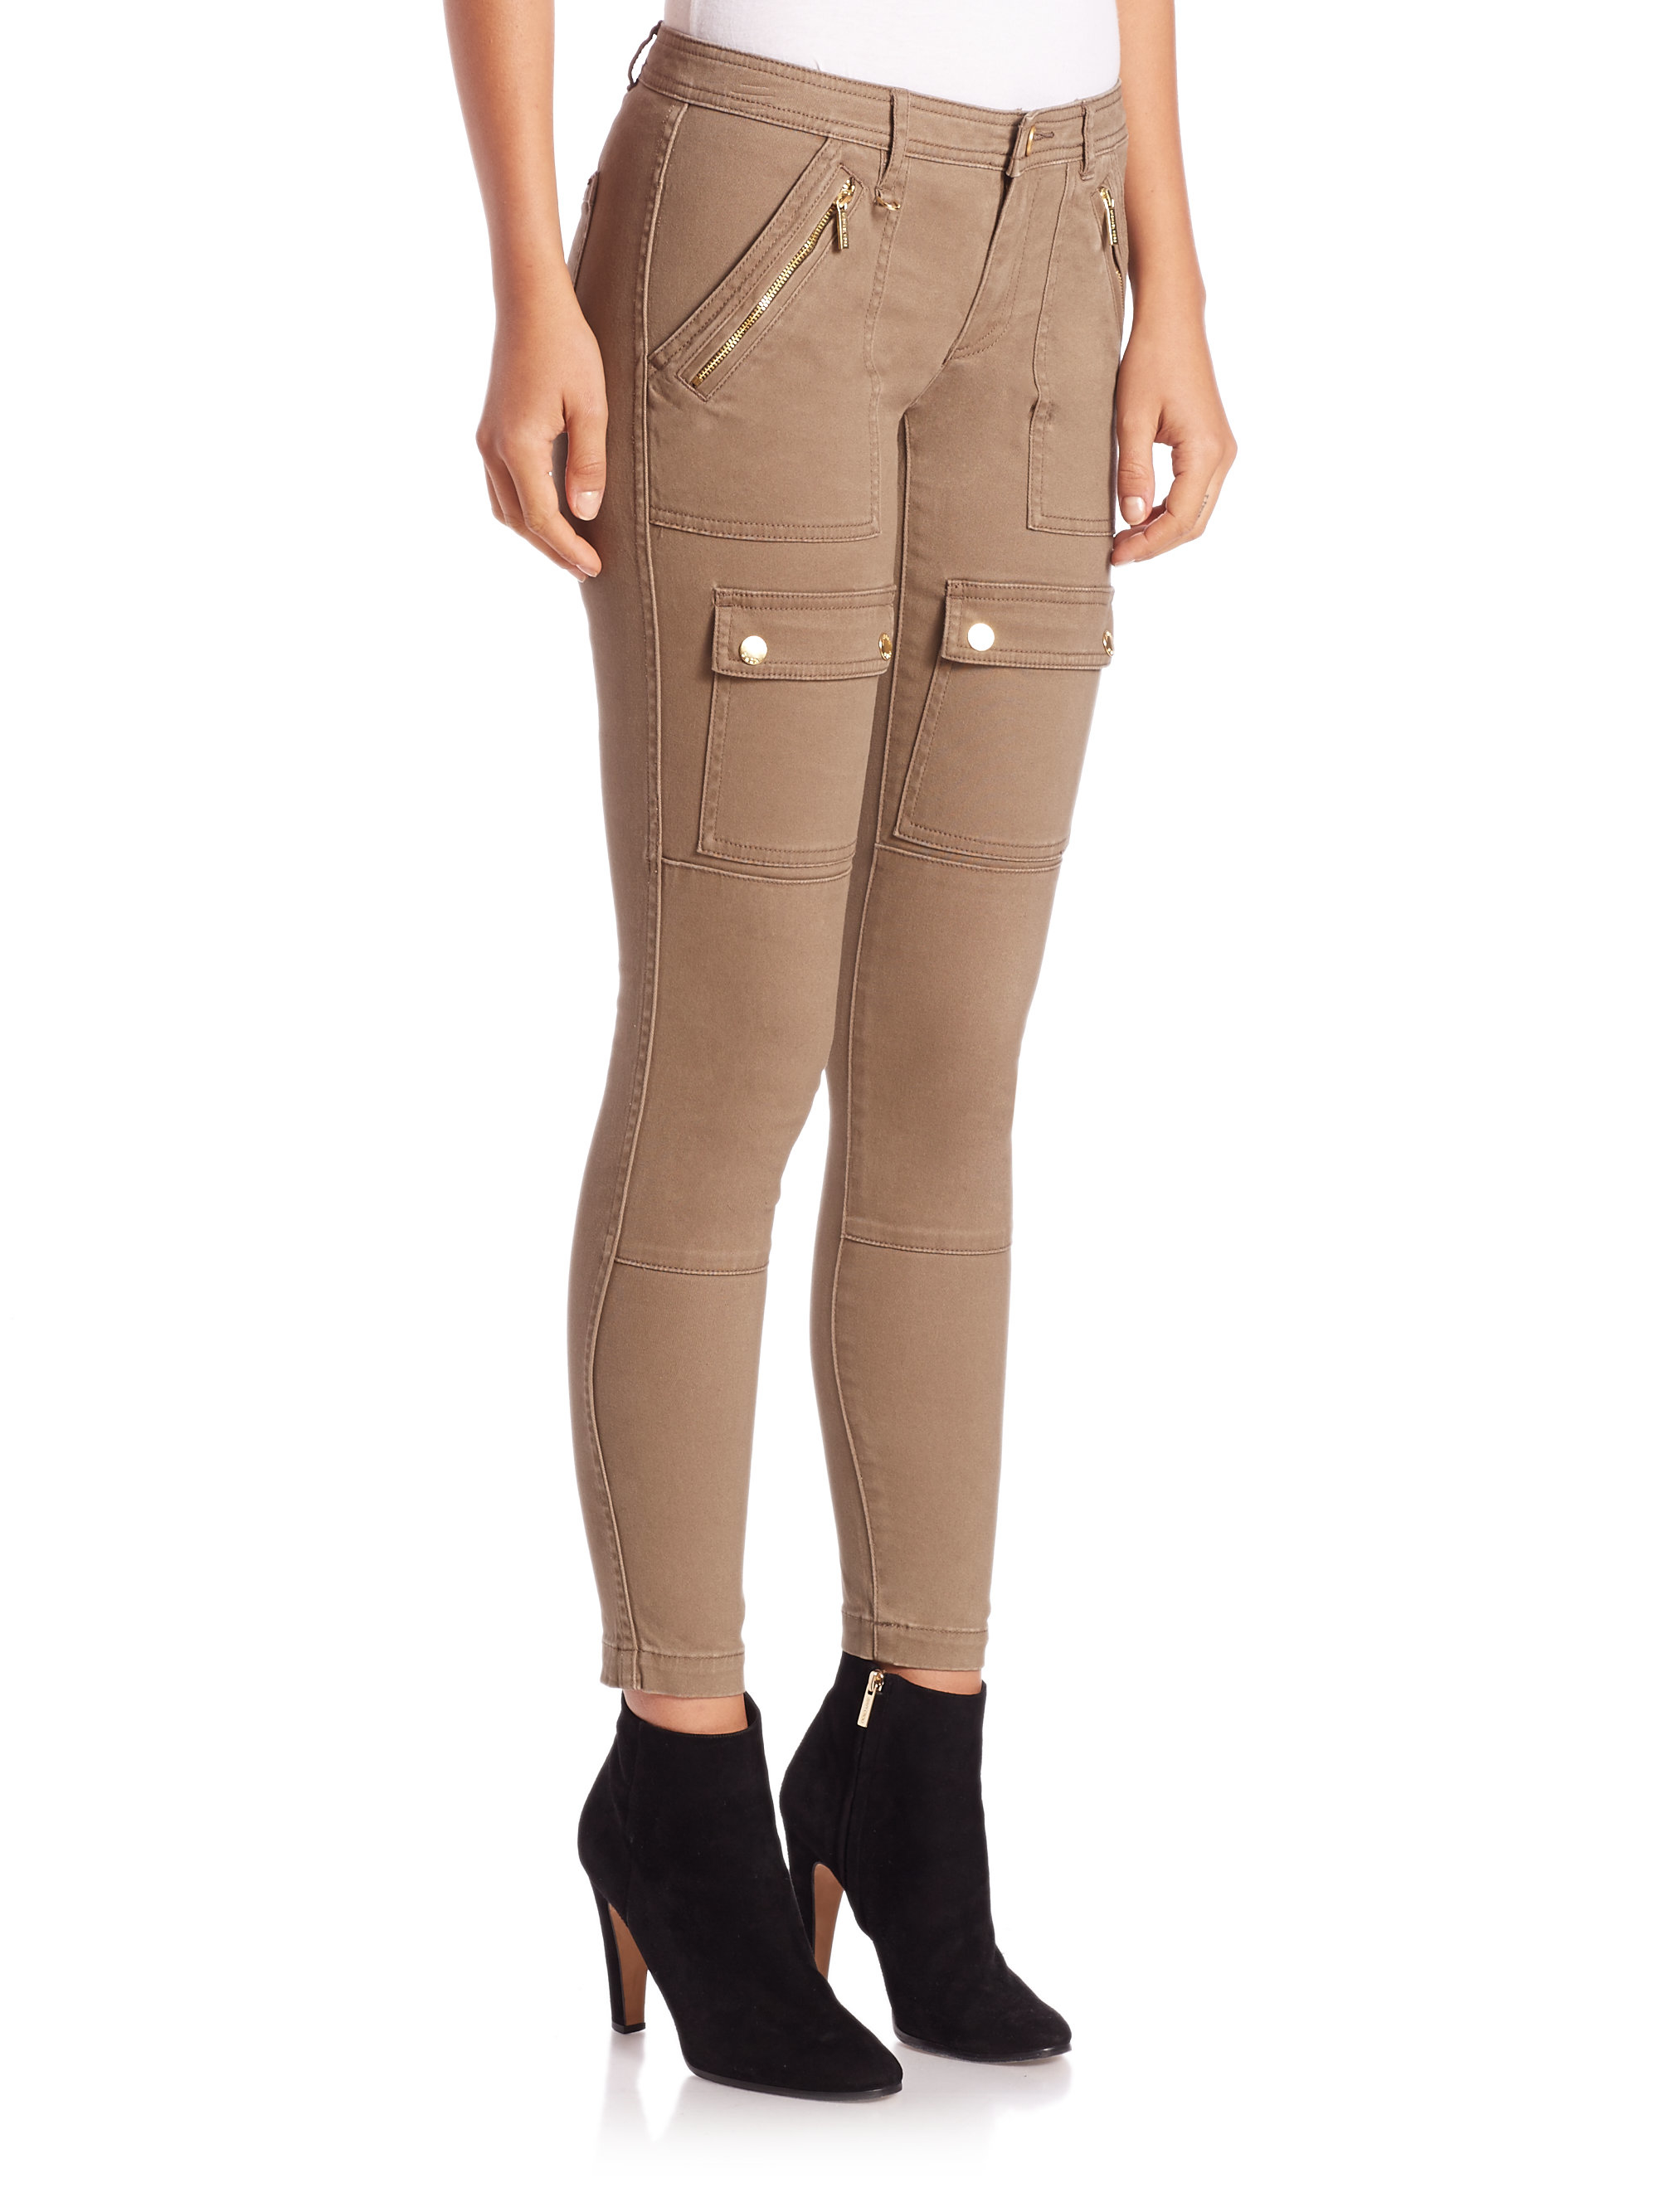 Pink Skinny Jeans For Women